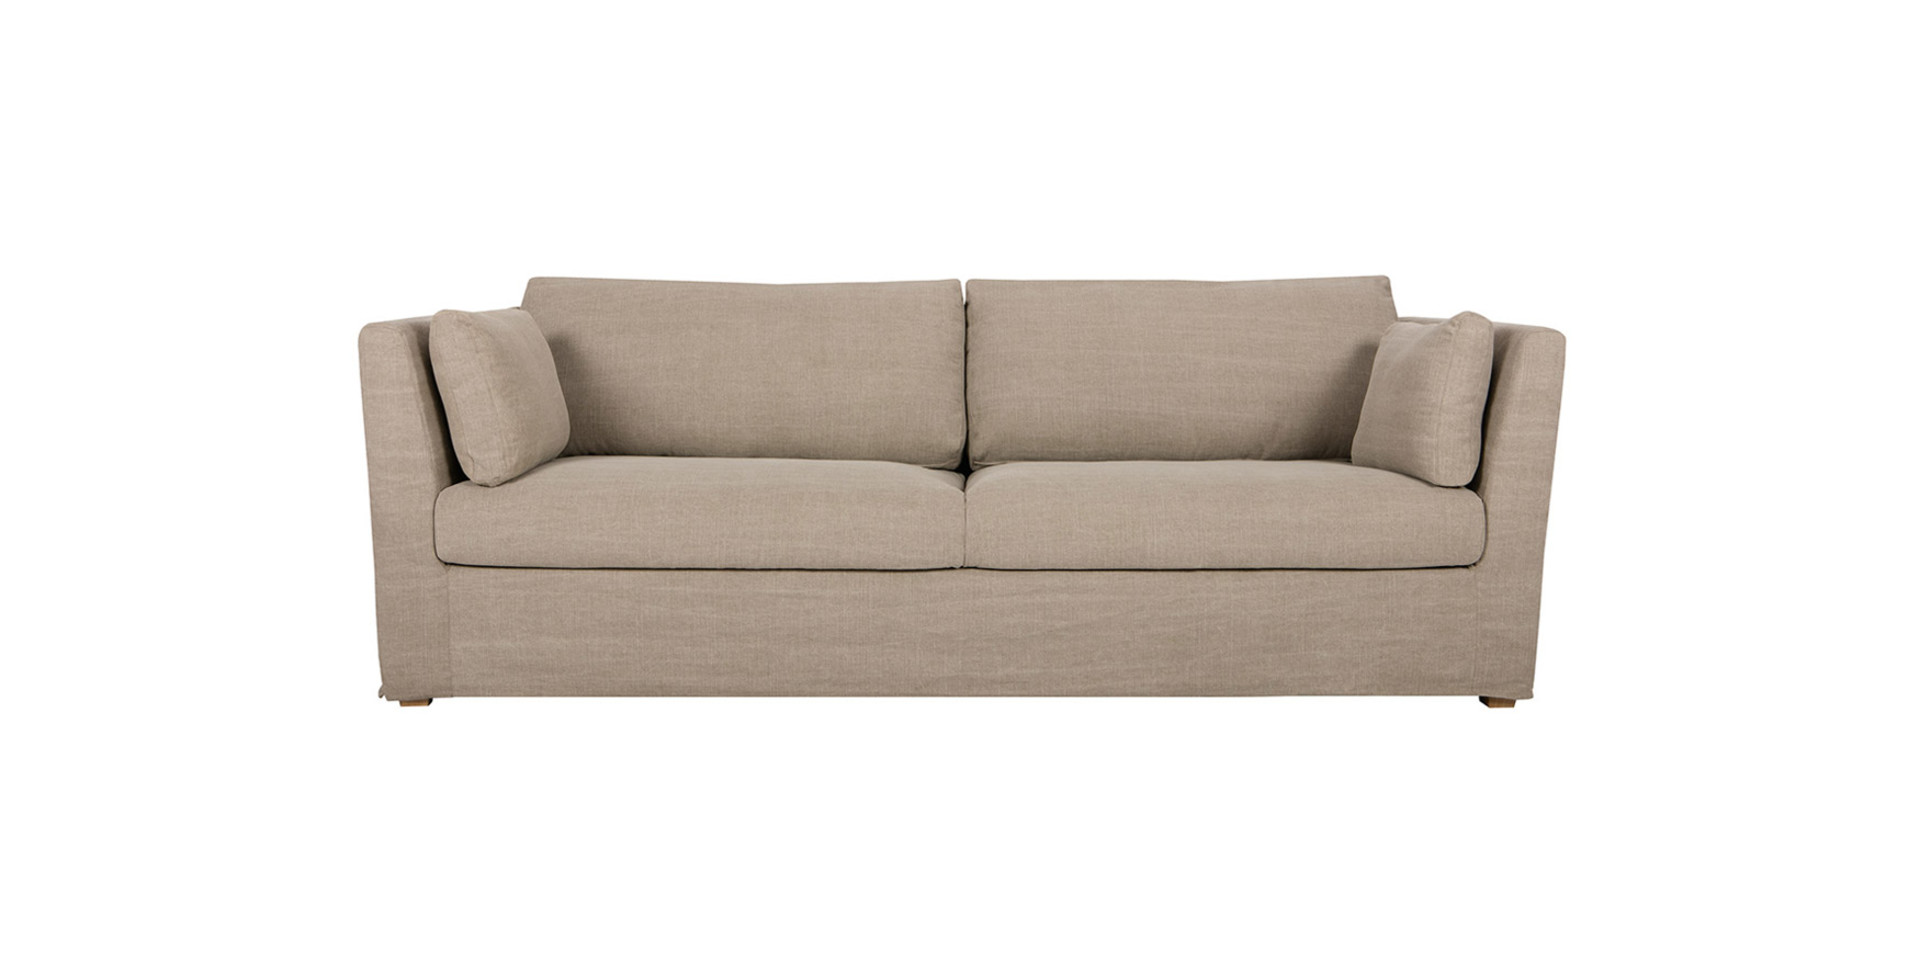 sits-ola-canape-3seater_kiss1_natural_1